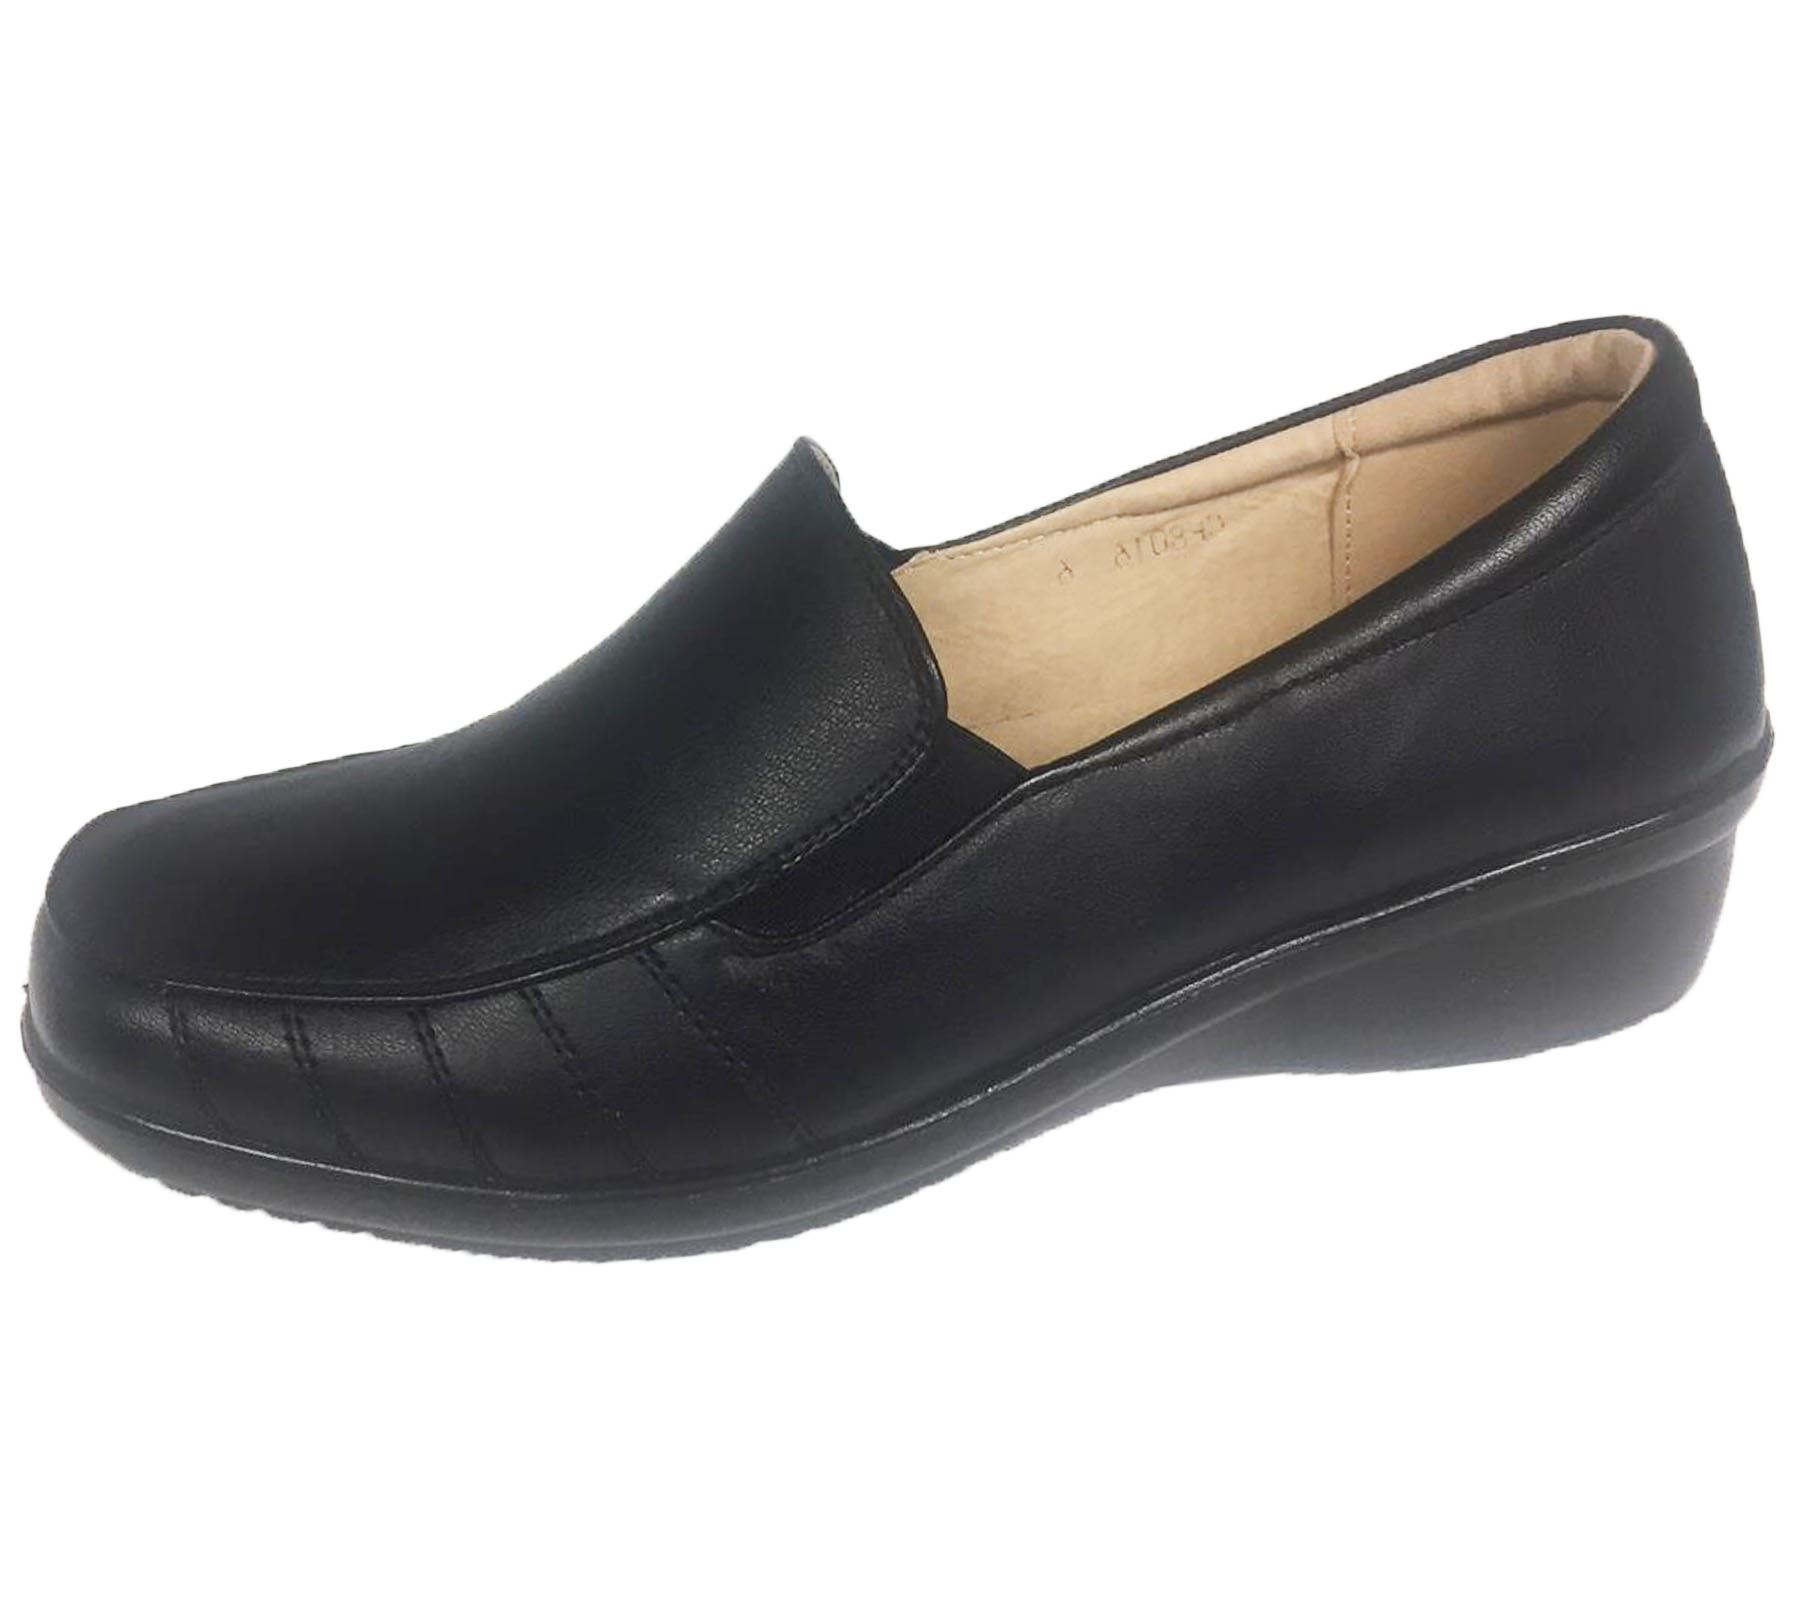 Ladies-Loafer-Moccasin-Womens-Casual-Comfort-Walk-Pumps-Slip-On-Shoes thumbnail 4